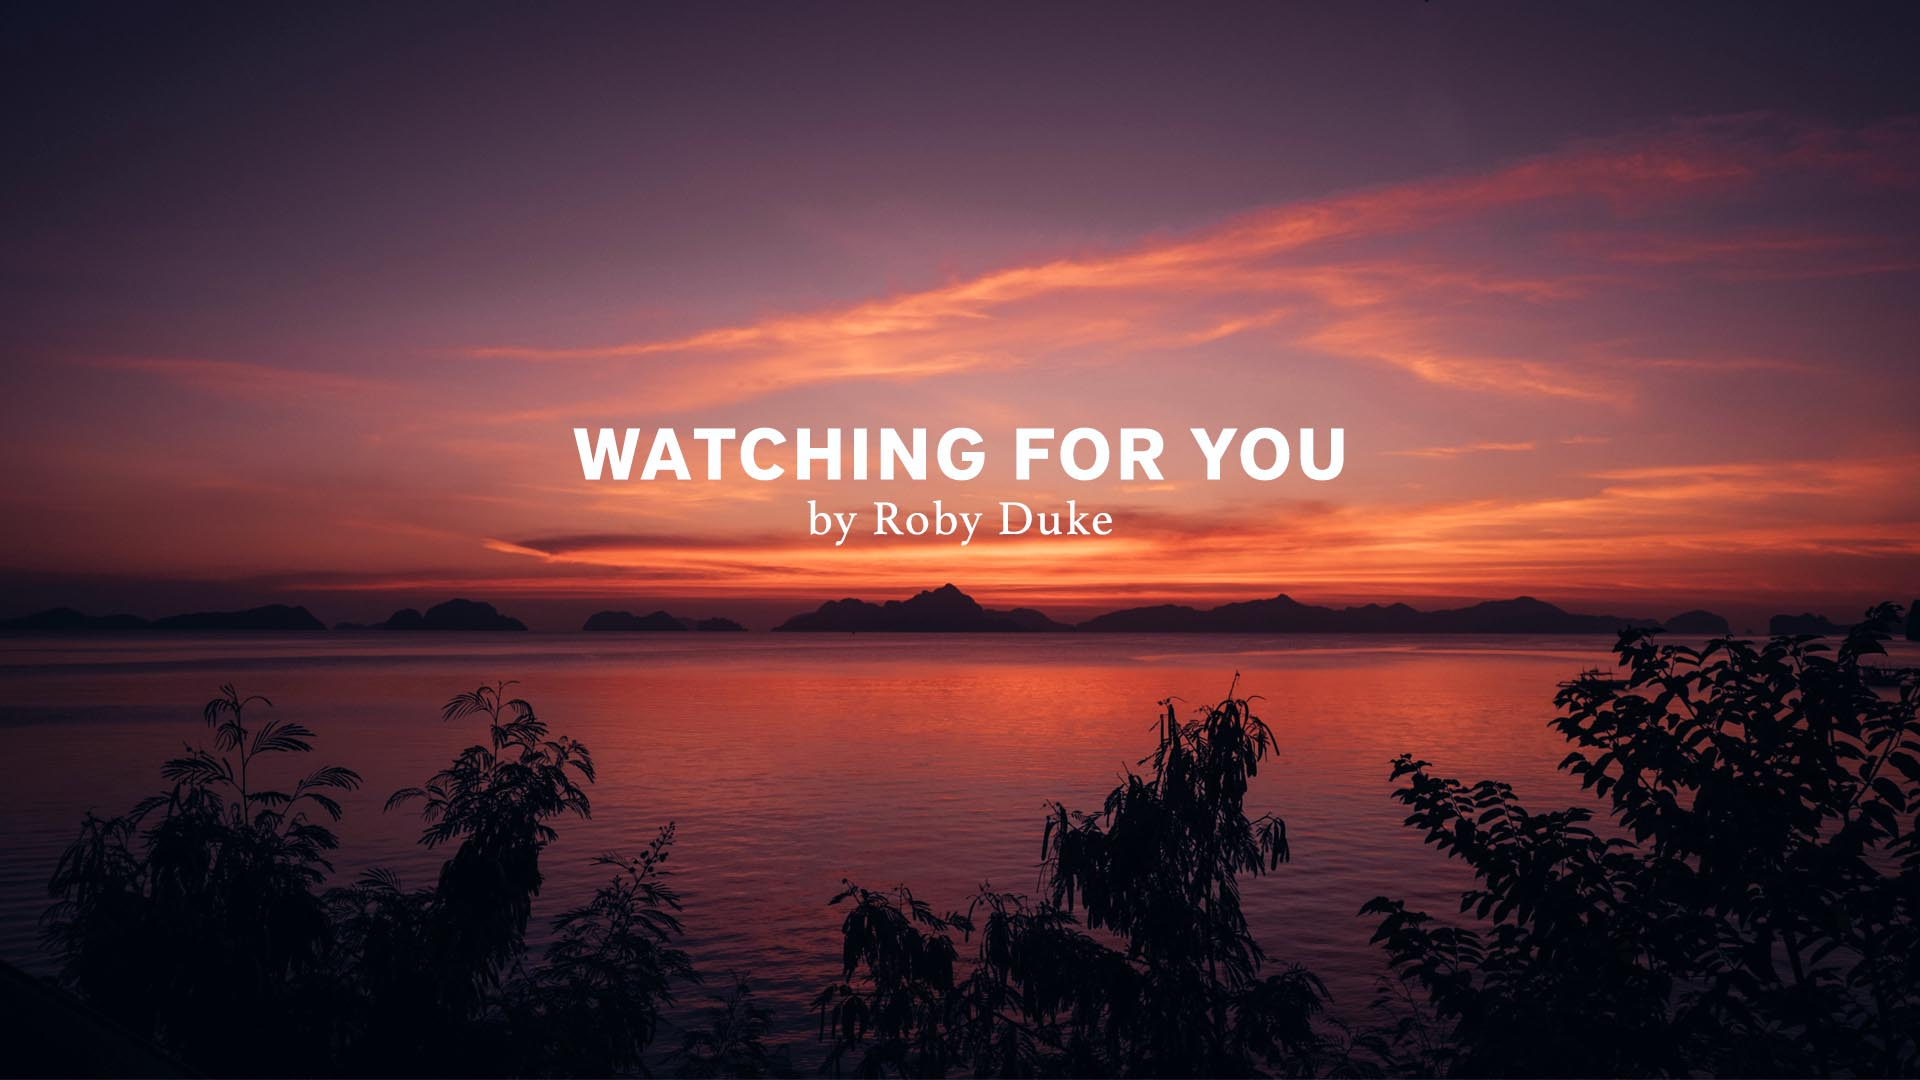 Watching For You